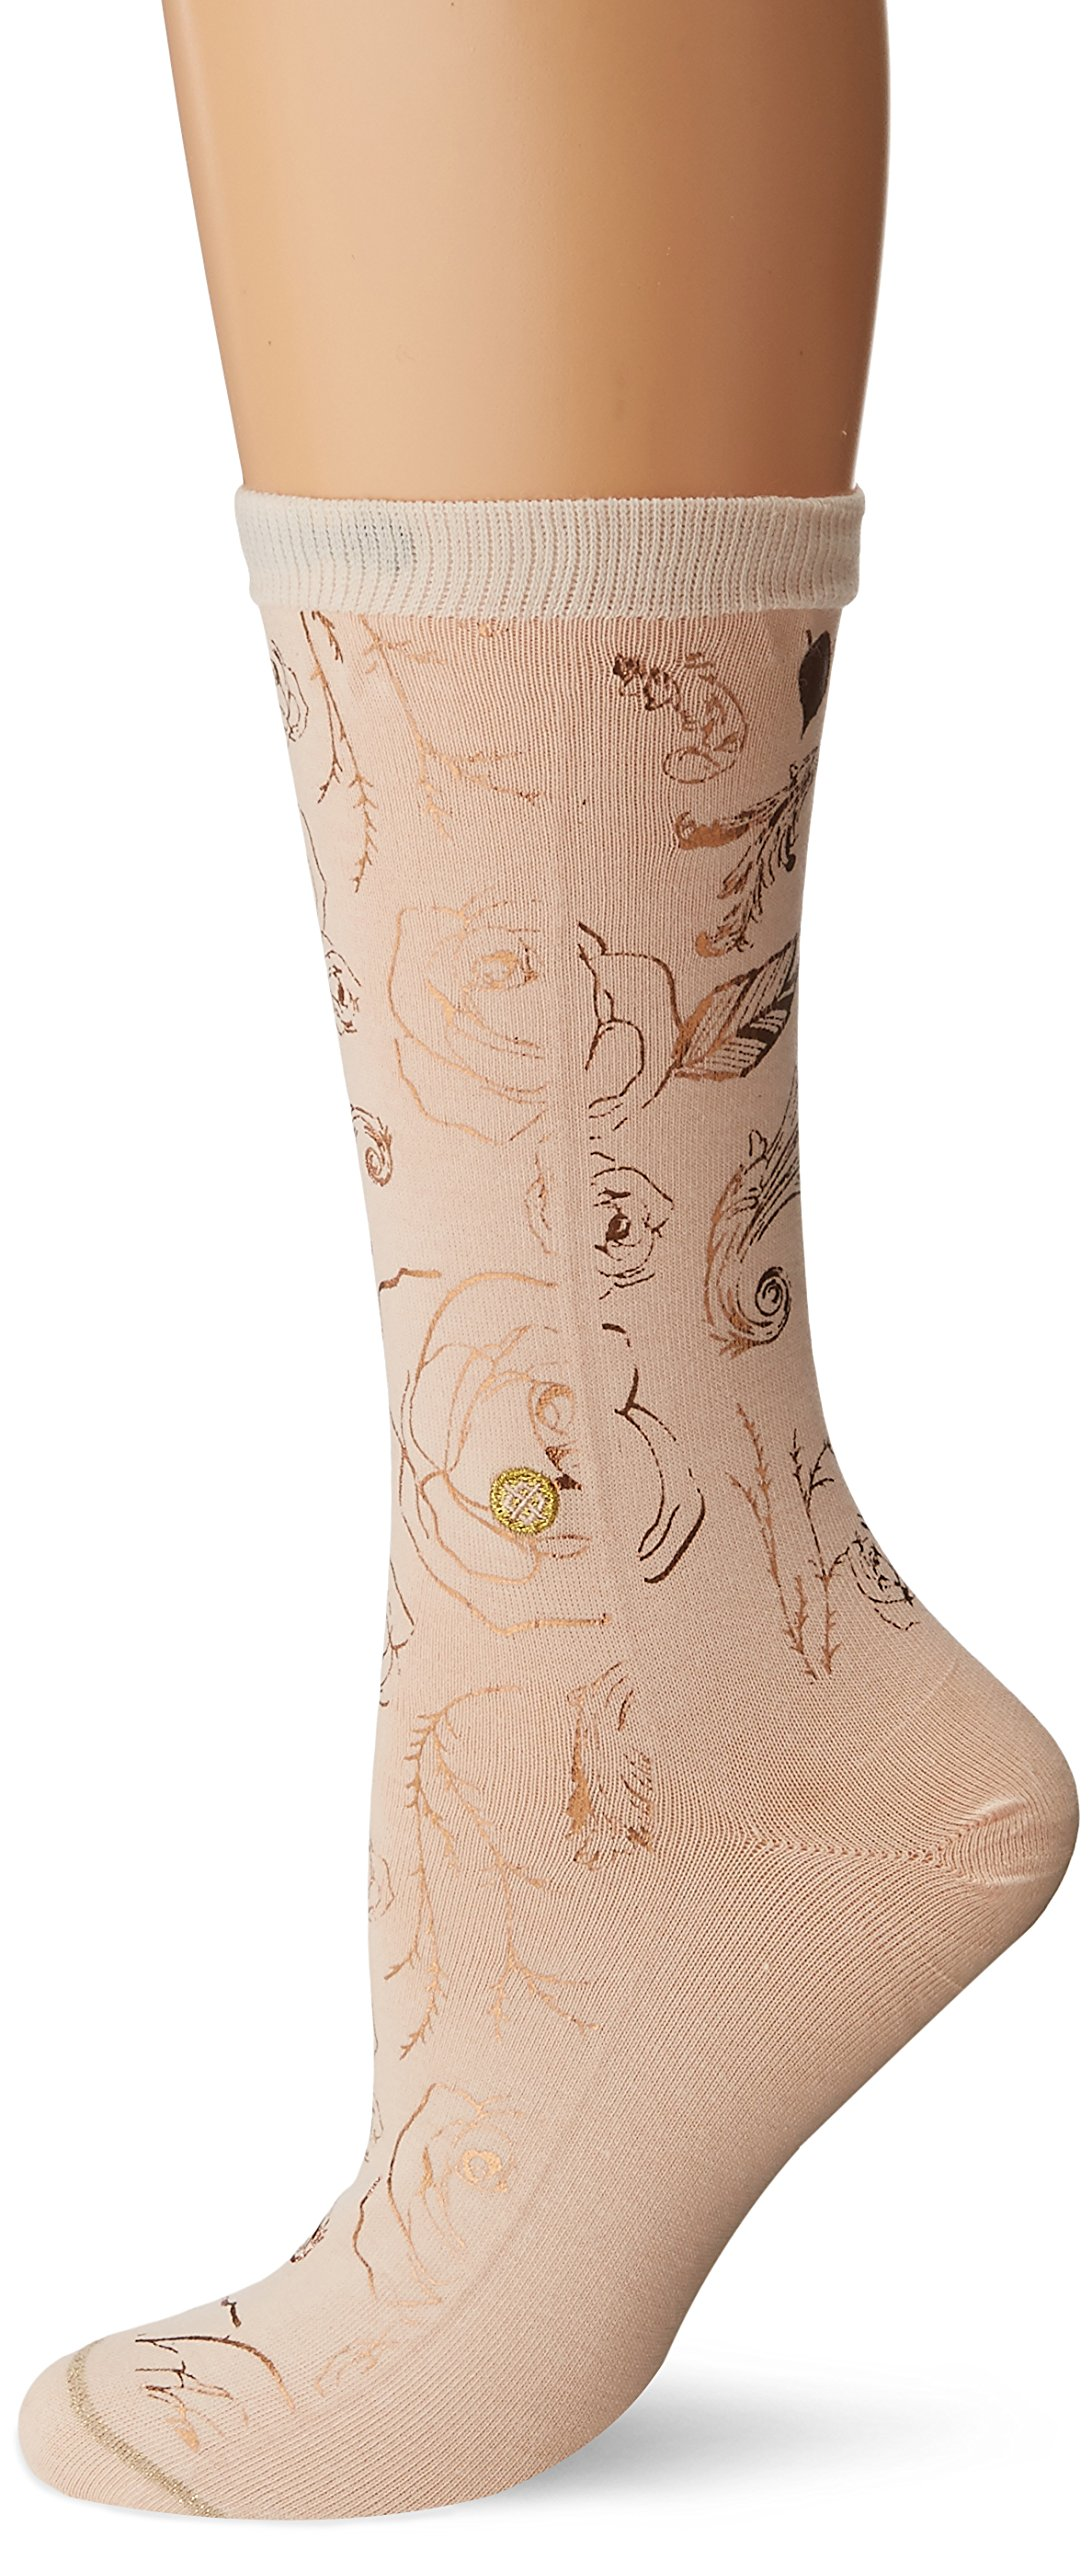 Stance Women's Belle of the Ball Beauty and the Beast Everyday Crew Sock, Blush, Small